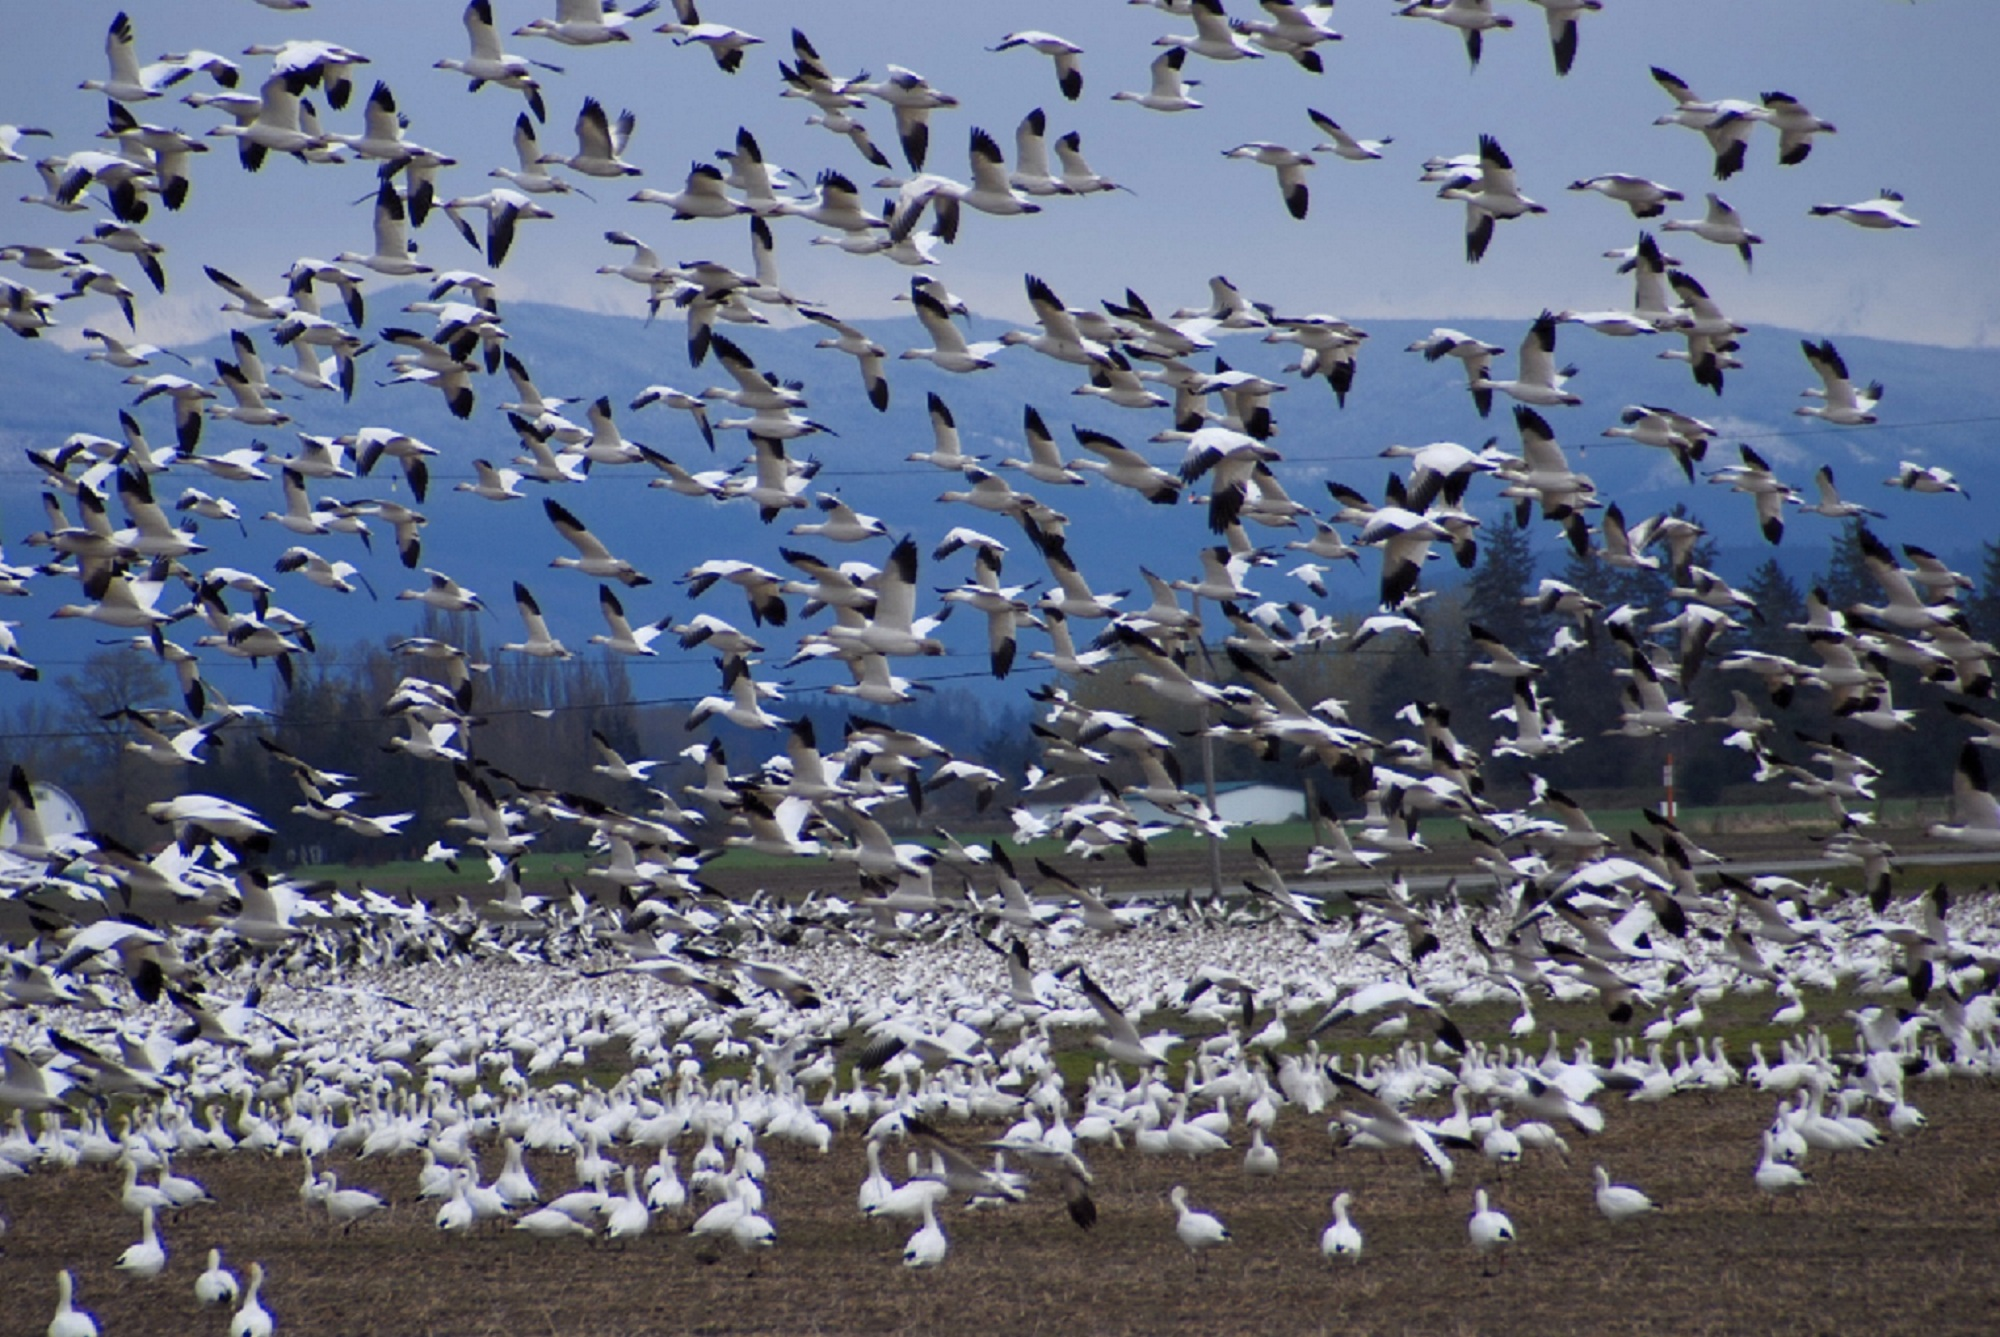 Snow geese on Fir Island in 2011. For more on Fir Island, see December 2016 Beaks and Bills. Photo: Joe Meche